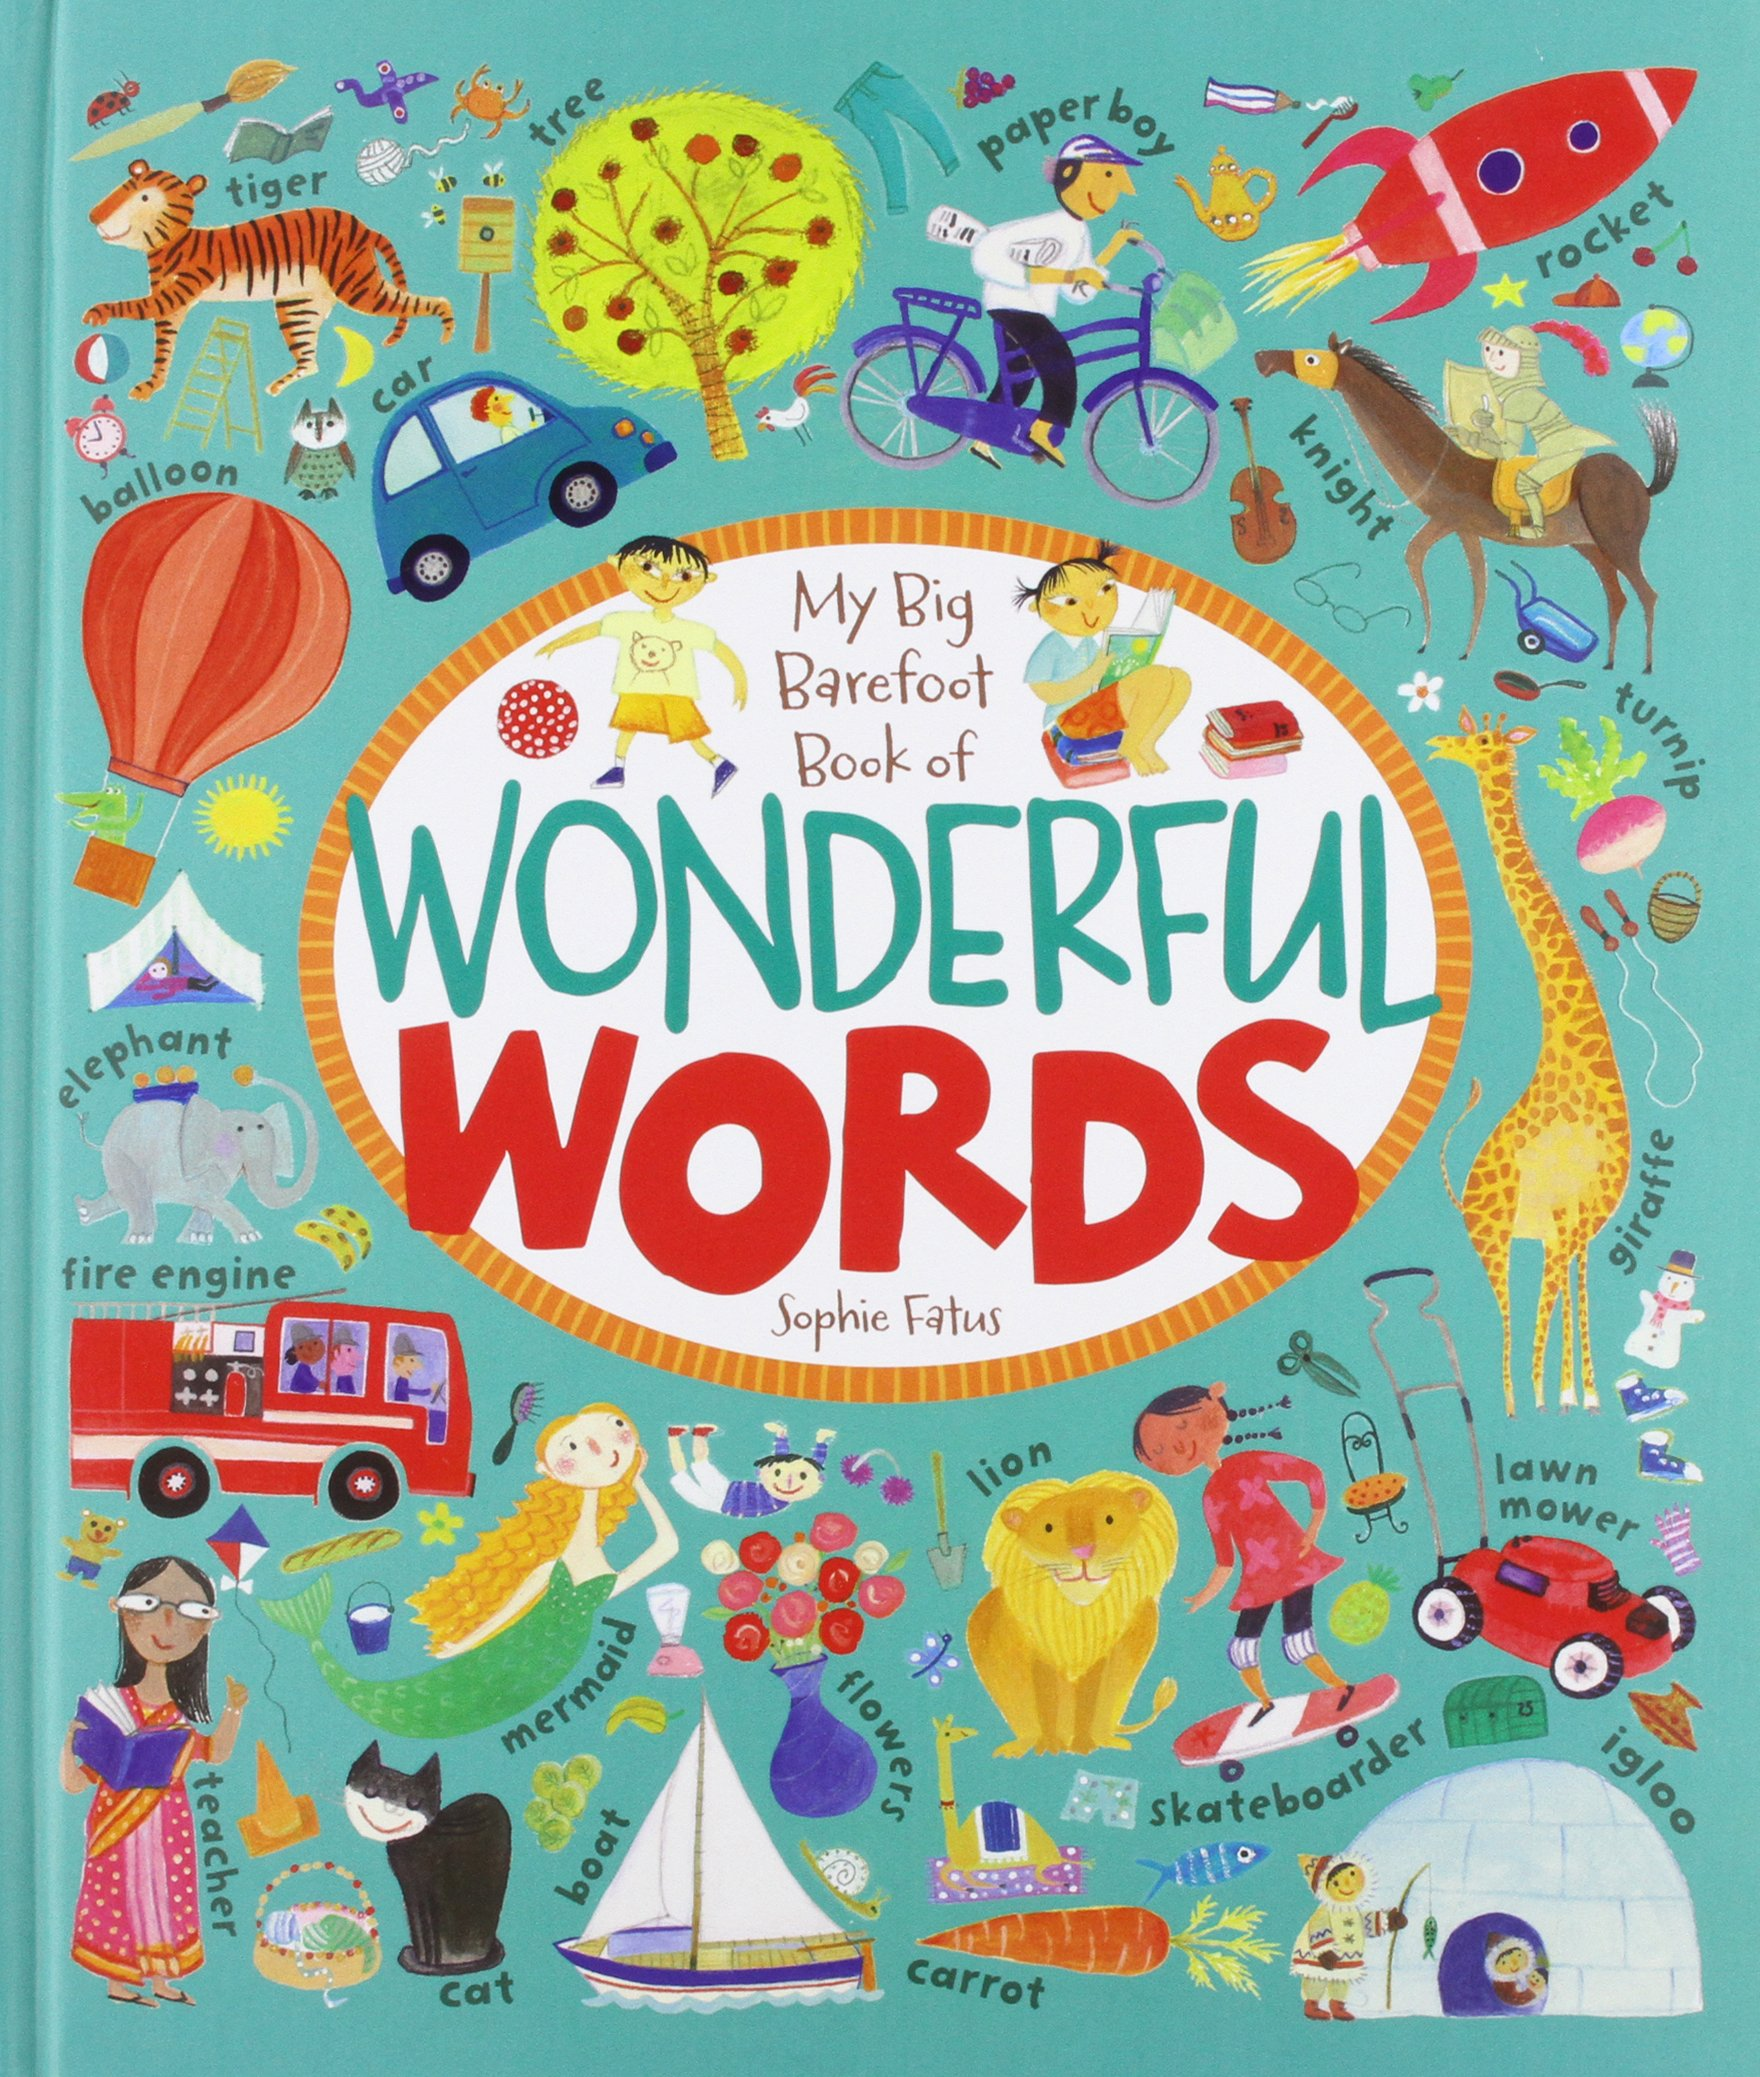 My Big Barefoot Book of Wonderful Words: Sophie Fatus: 9781782850915 ...